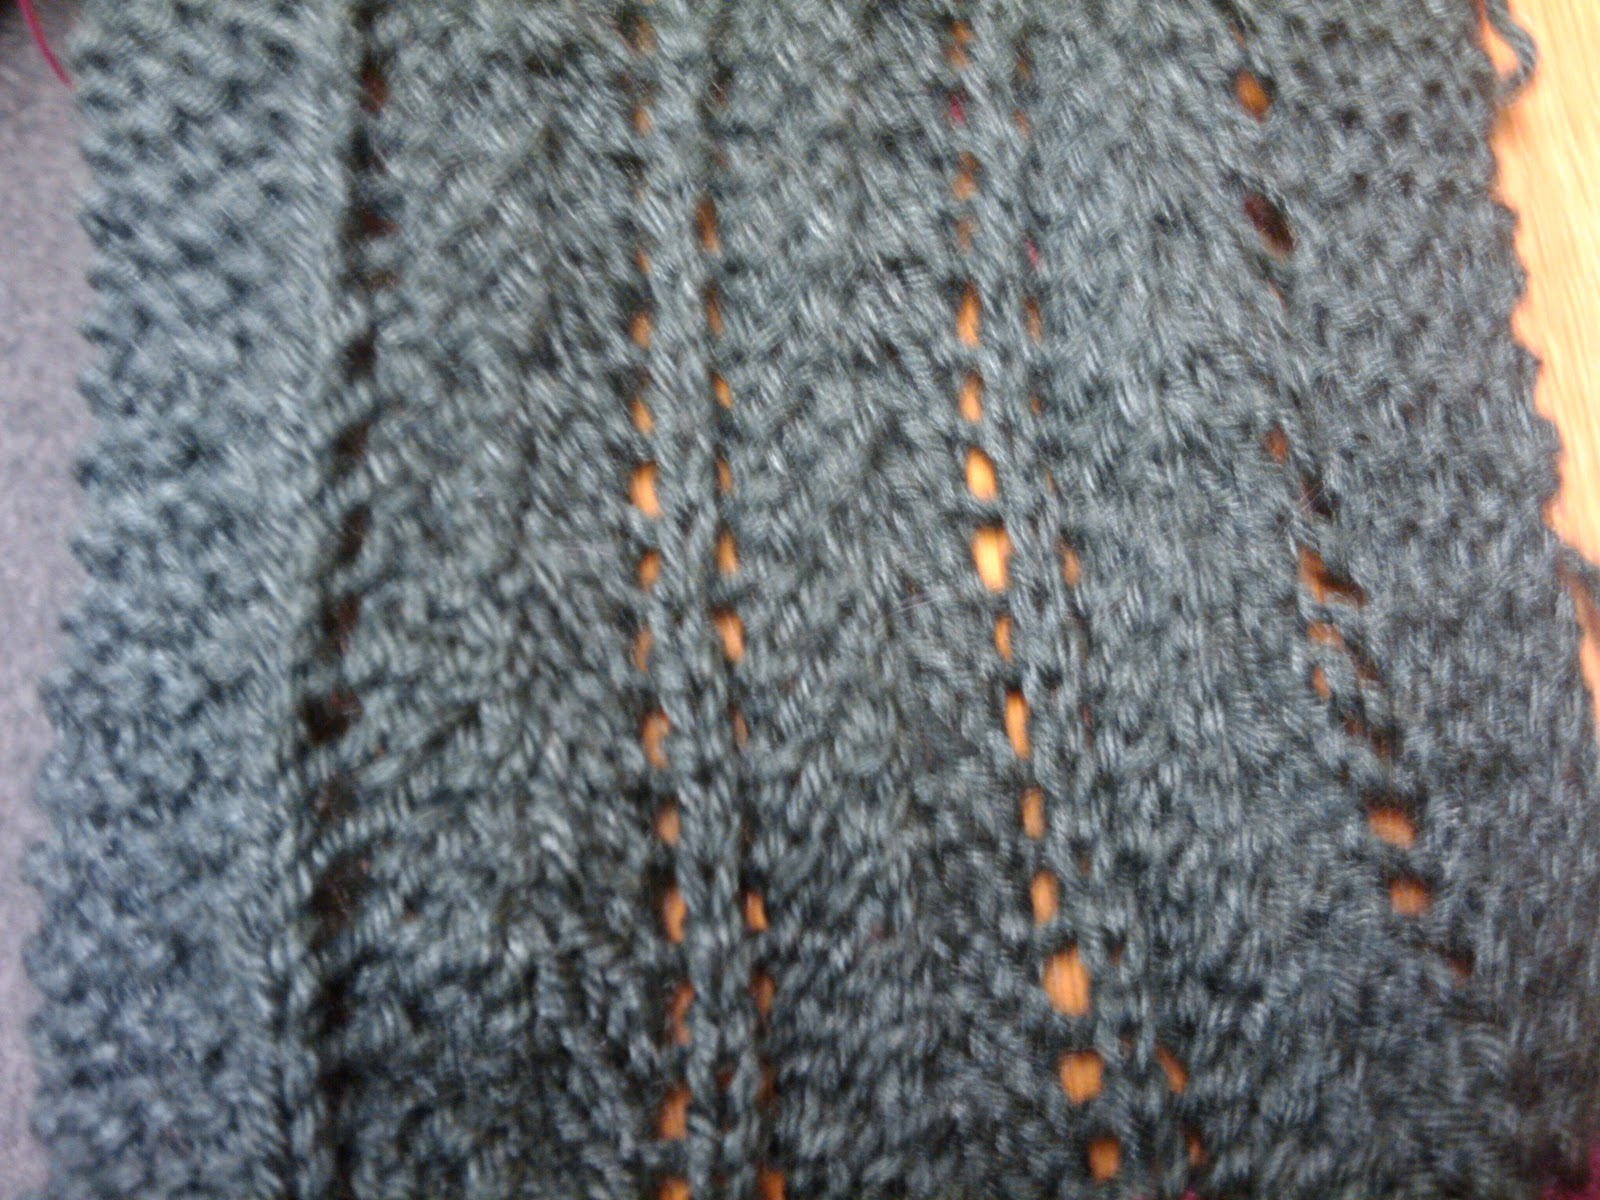 Knitting Increase Stitches Purl Row : . Knit So Simple: New Stitch Knitch